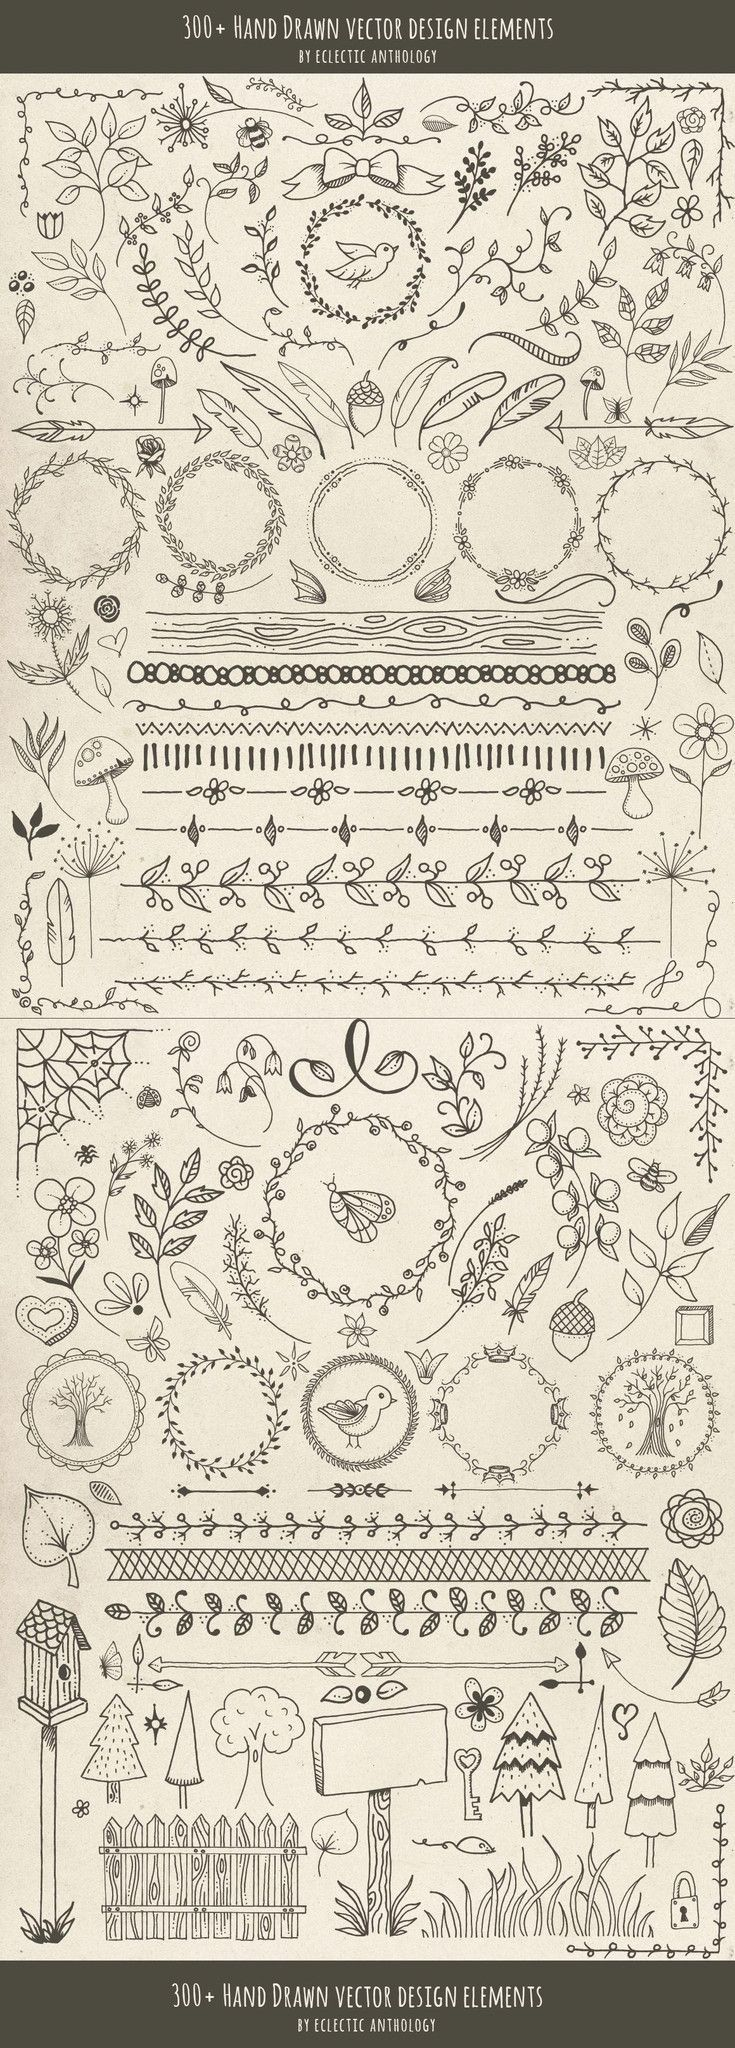 """Over 300 """"Woodland Whimsy"""" Hand Drawn Vector Design Elements! Flourishes, curls, corners, borders, wreaths, leaves, flowers, mushrooms, birds, bugs, hearts, stars, feathers, arrows, and so much more."""